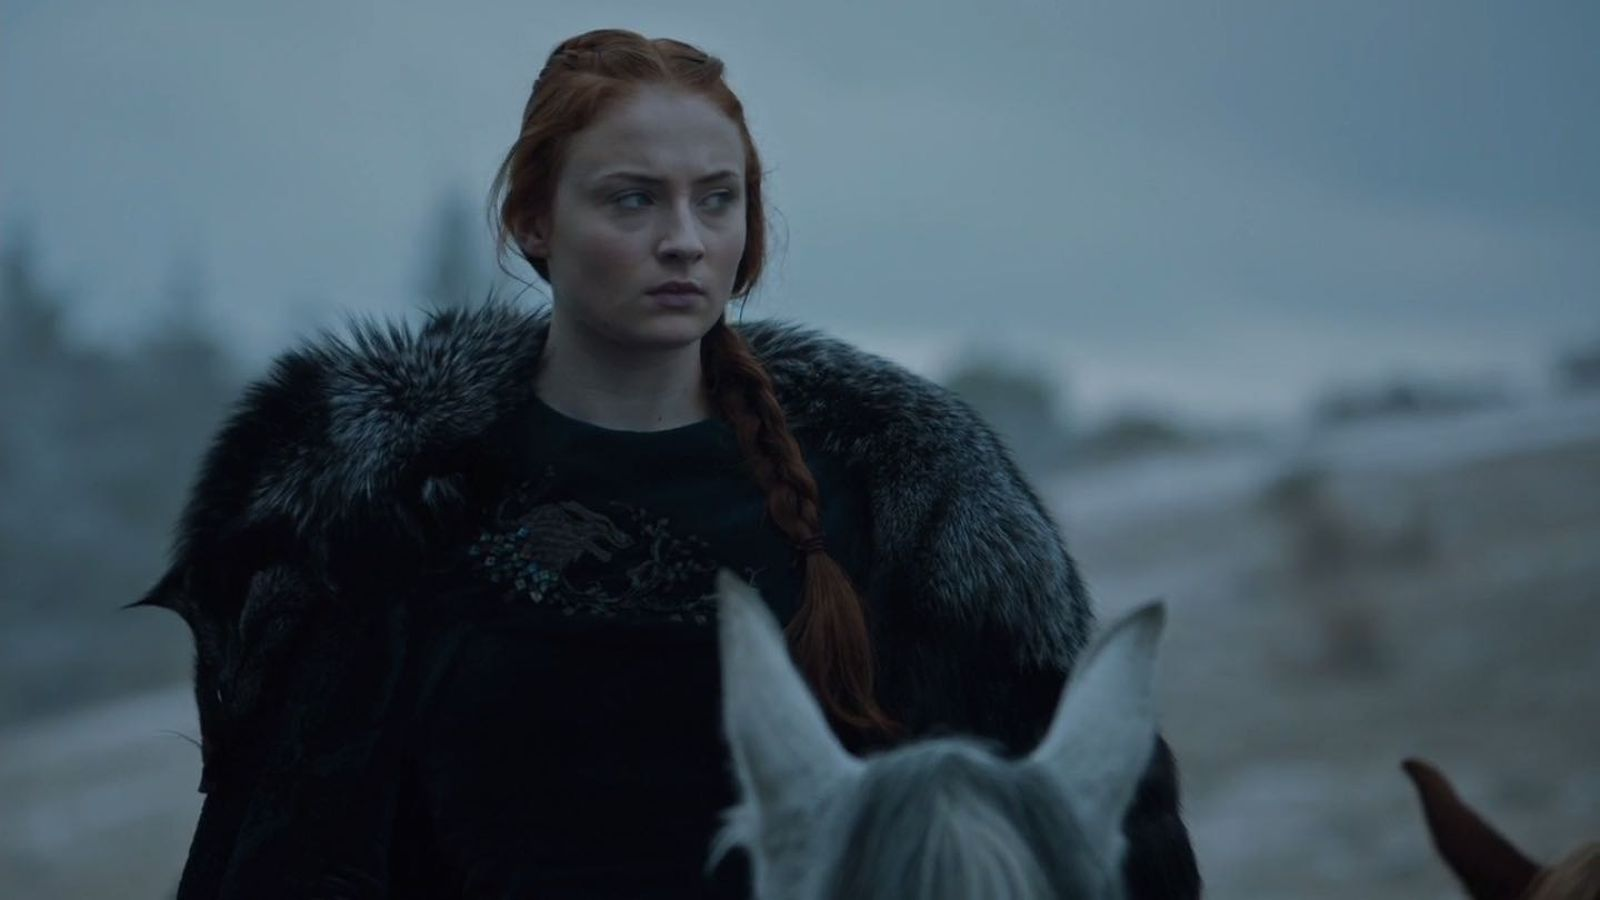 How many catch phrases did you catch in the Game of Thrones finale?